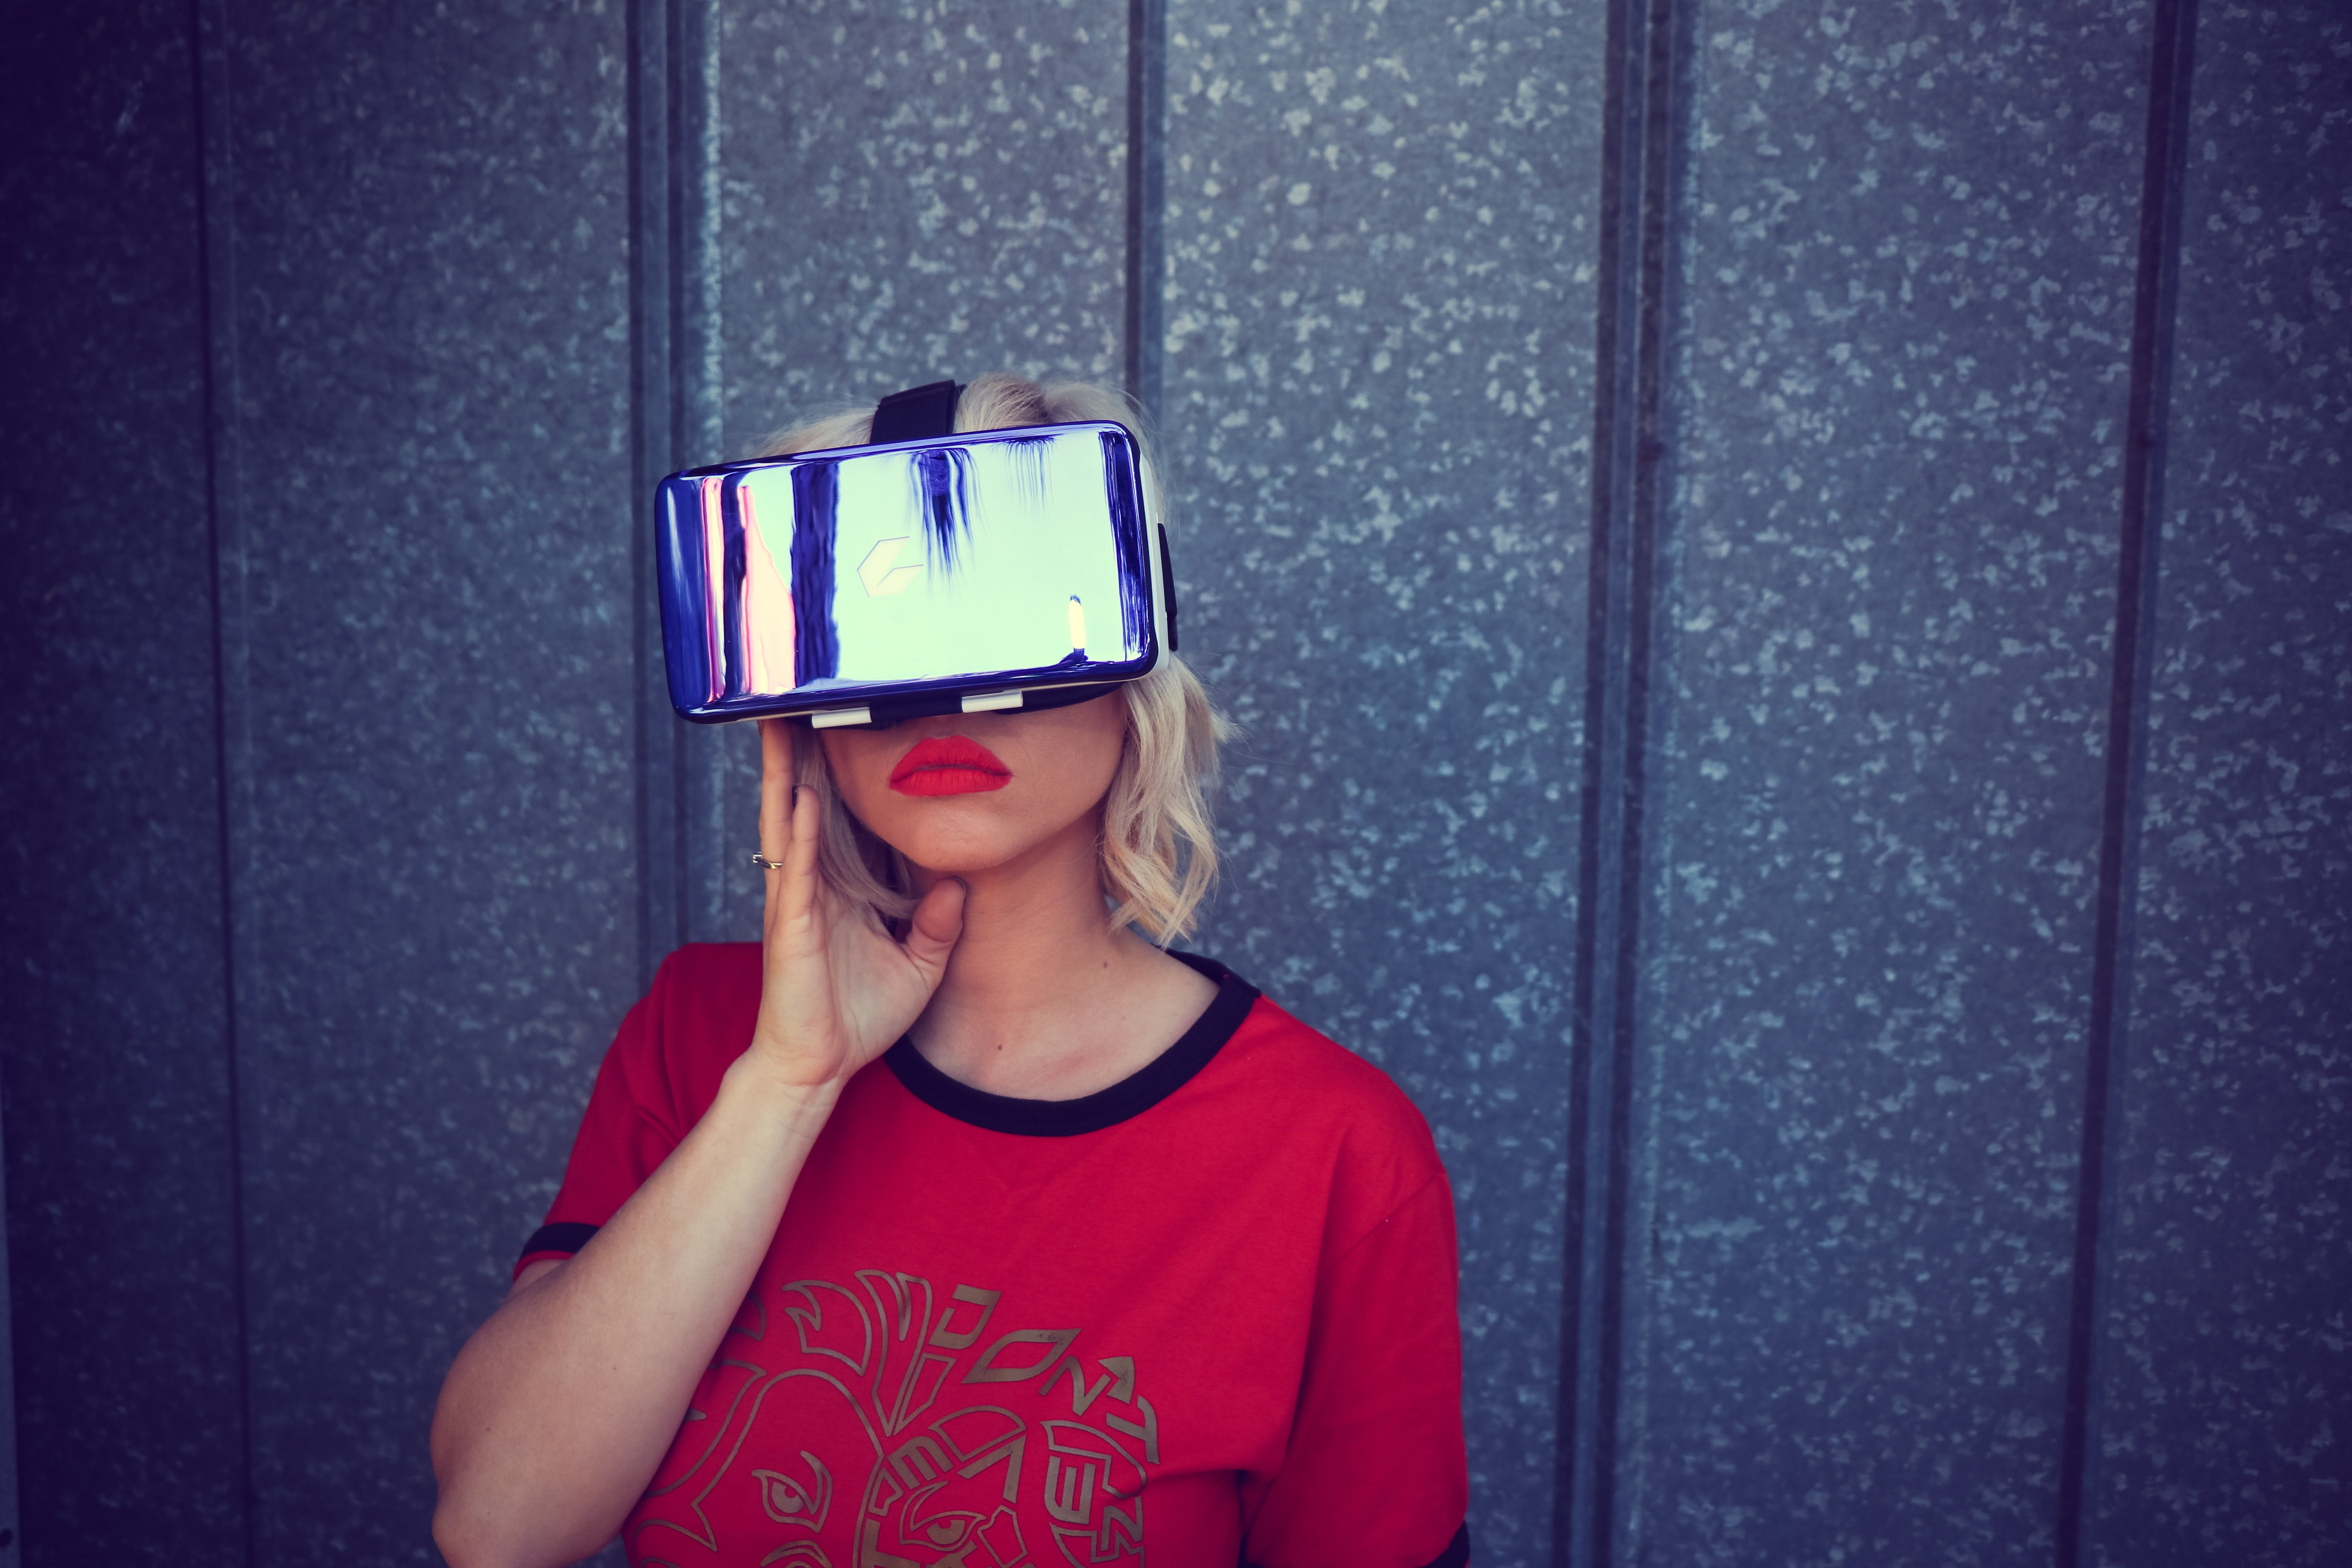 A girl with red sweater and lipstick are wearing a VR-headset and posing